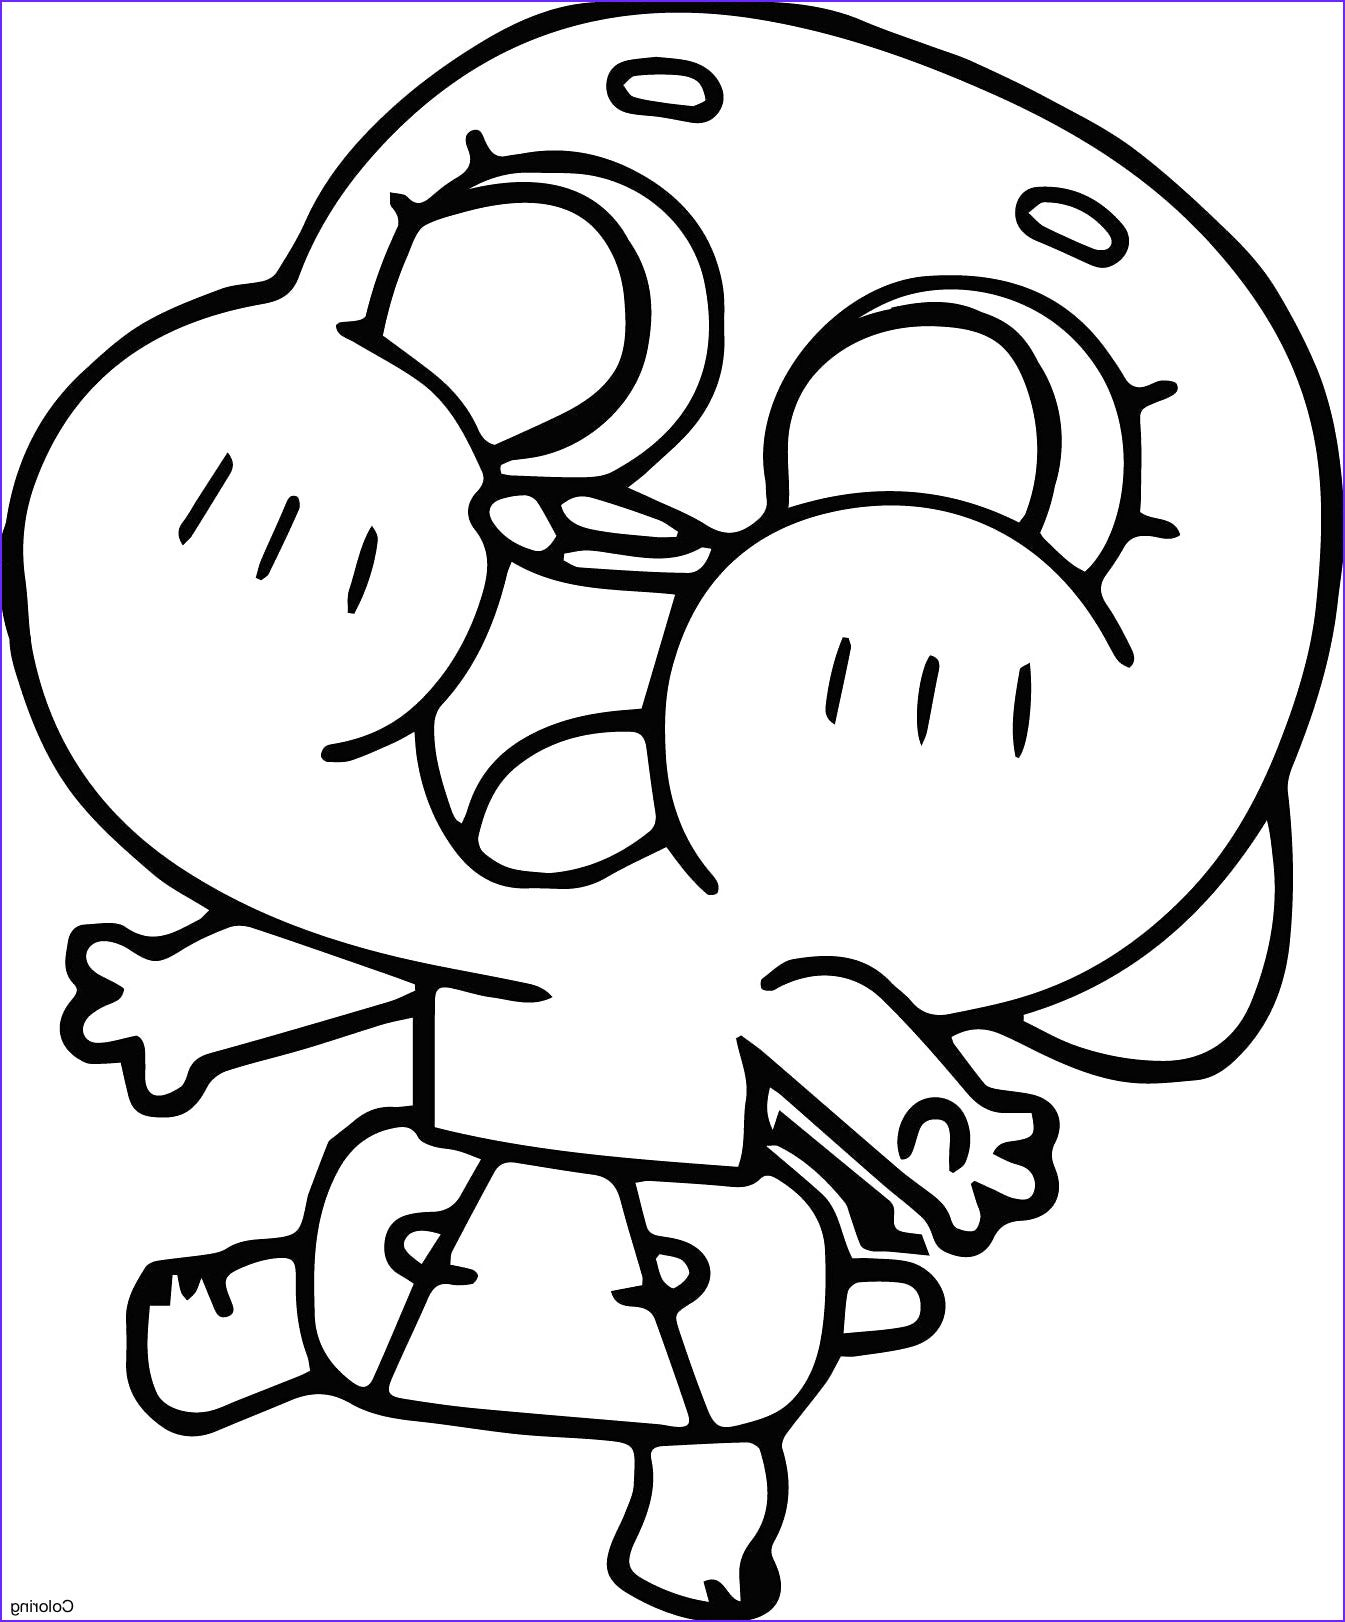 15 Awesome Gumball Coloring Pages Gallery In 2020 Coloring Pages Cool Coloring Pages Gumball